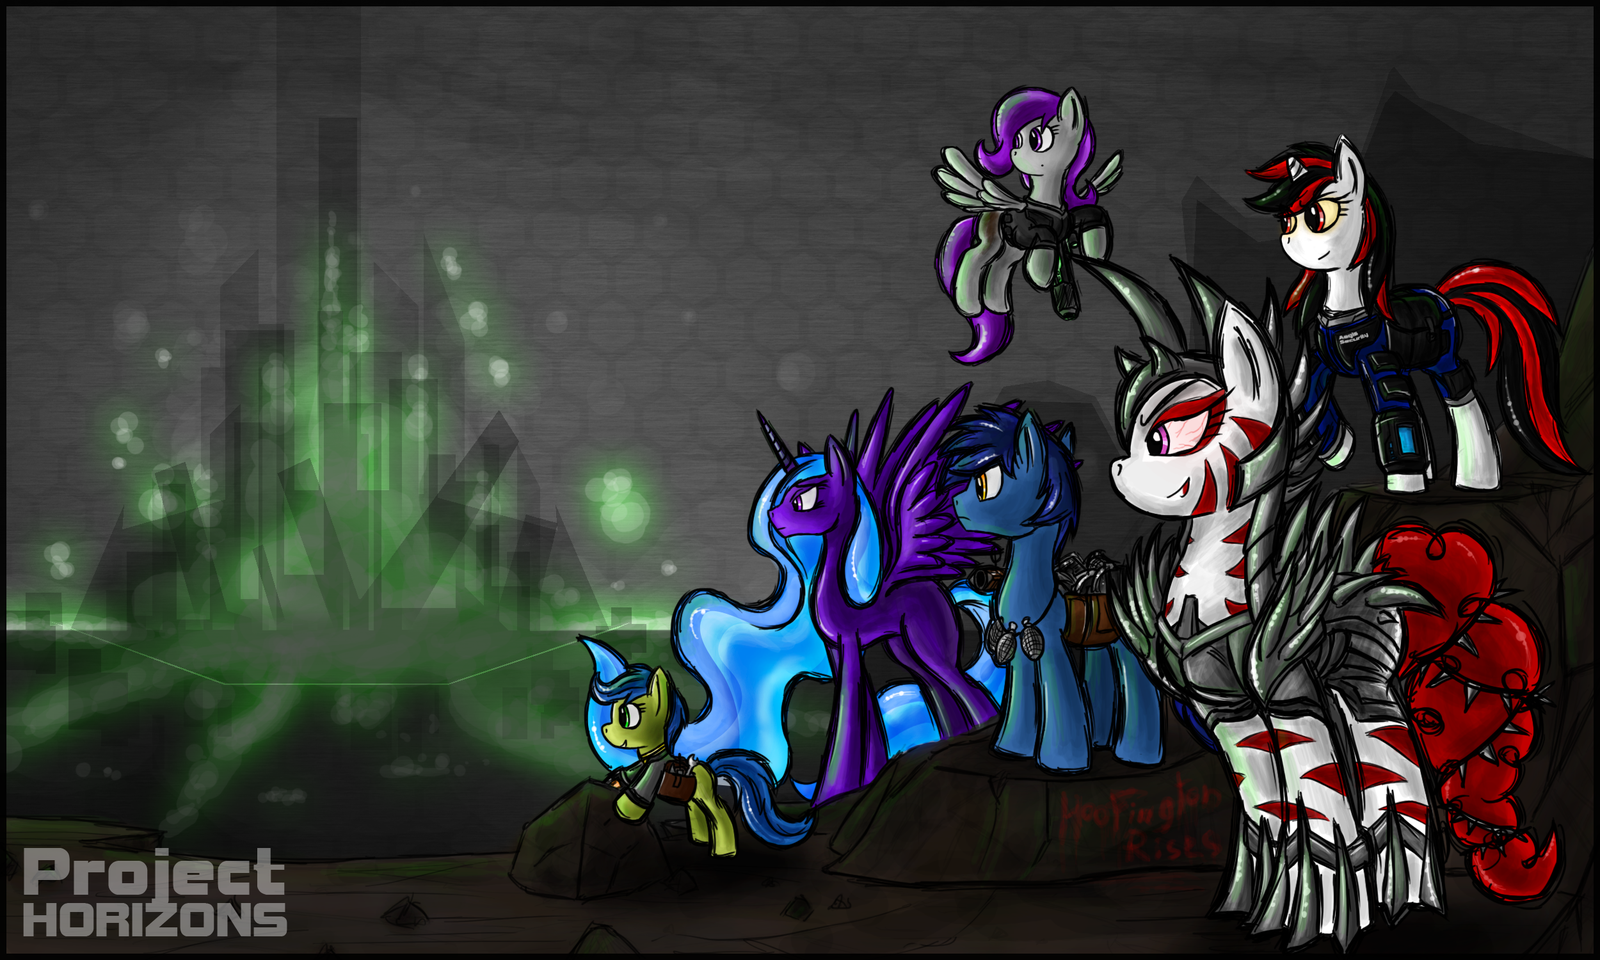 Lacunae Fallout Equestria Lacunae fallout equestria | My little pony  cartoon, Mlp characters, Fallout